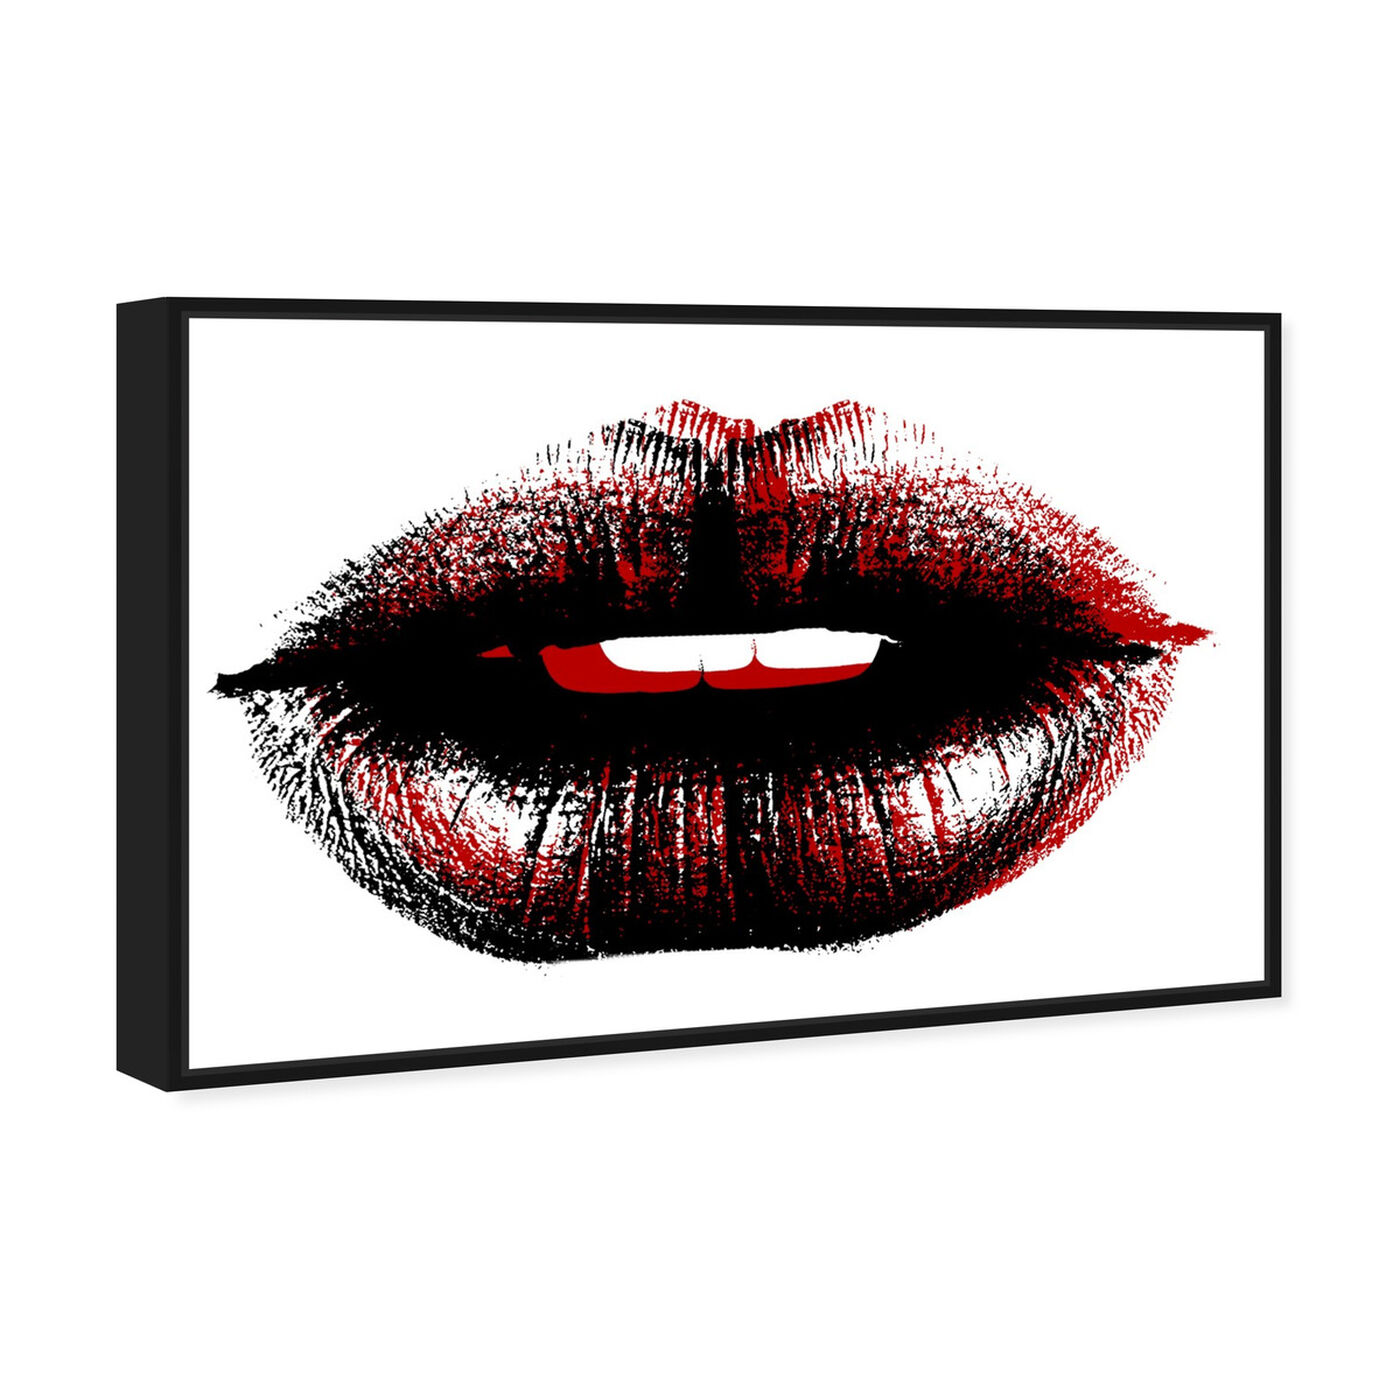 Angled view of Bond Girl Lips featuring fashion and glam and lips art.